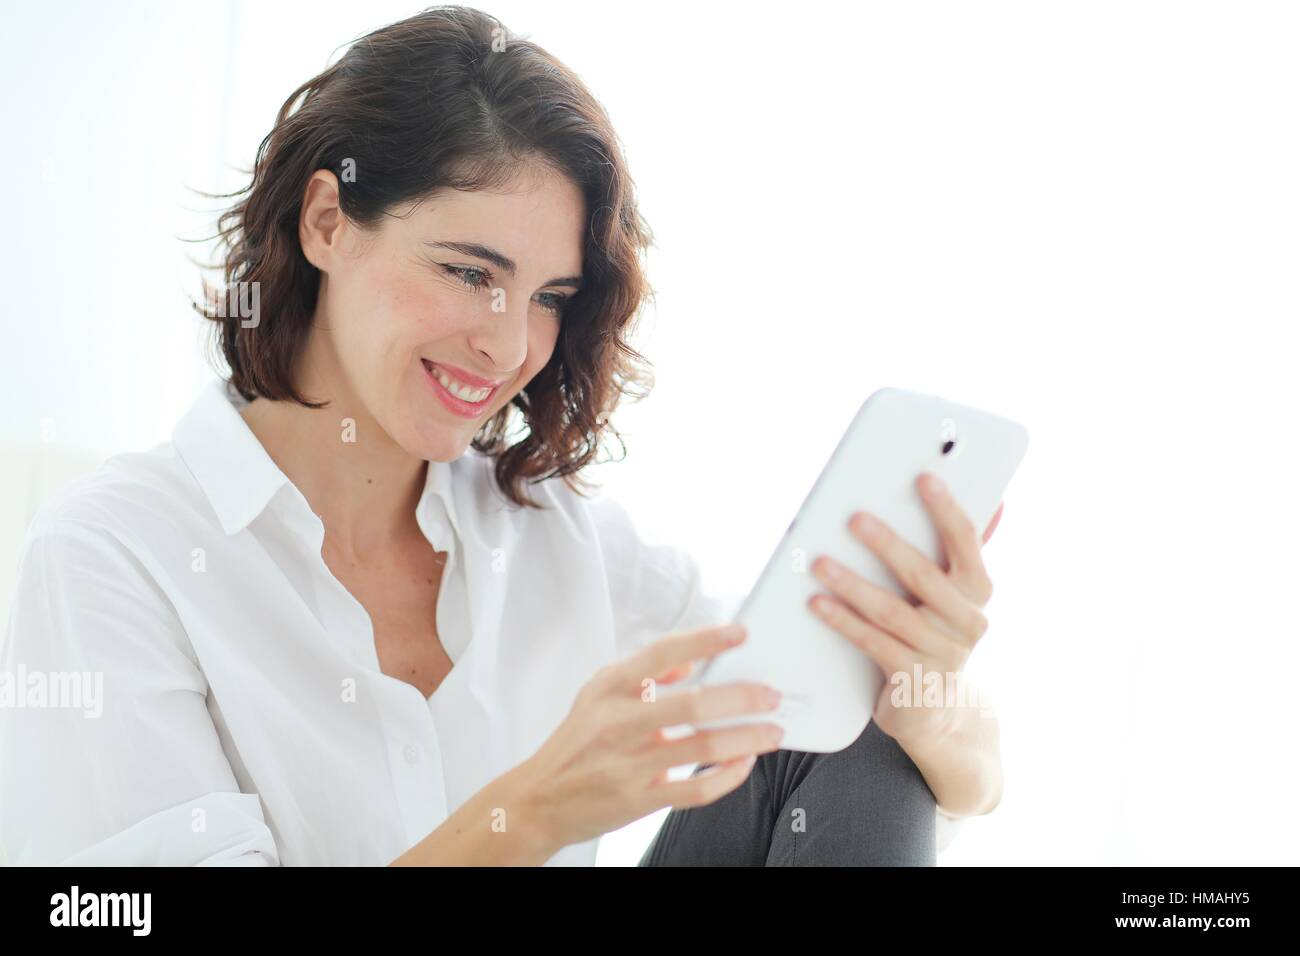 Woman using tablet computer and smiling - Stock Image